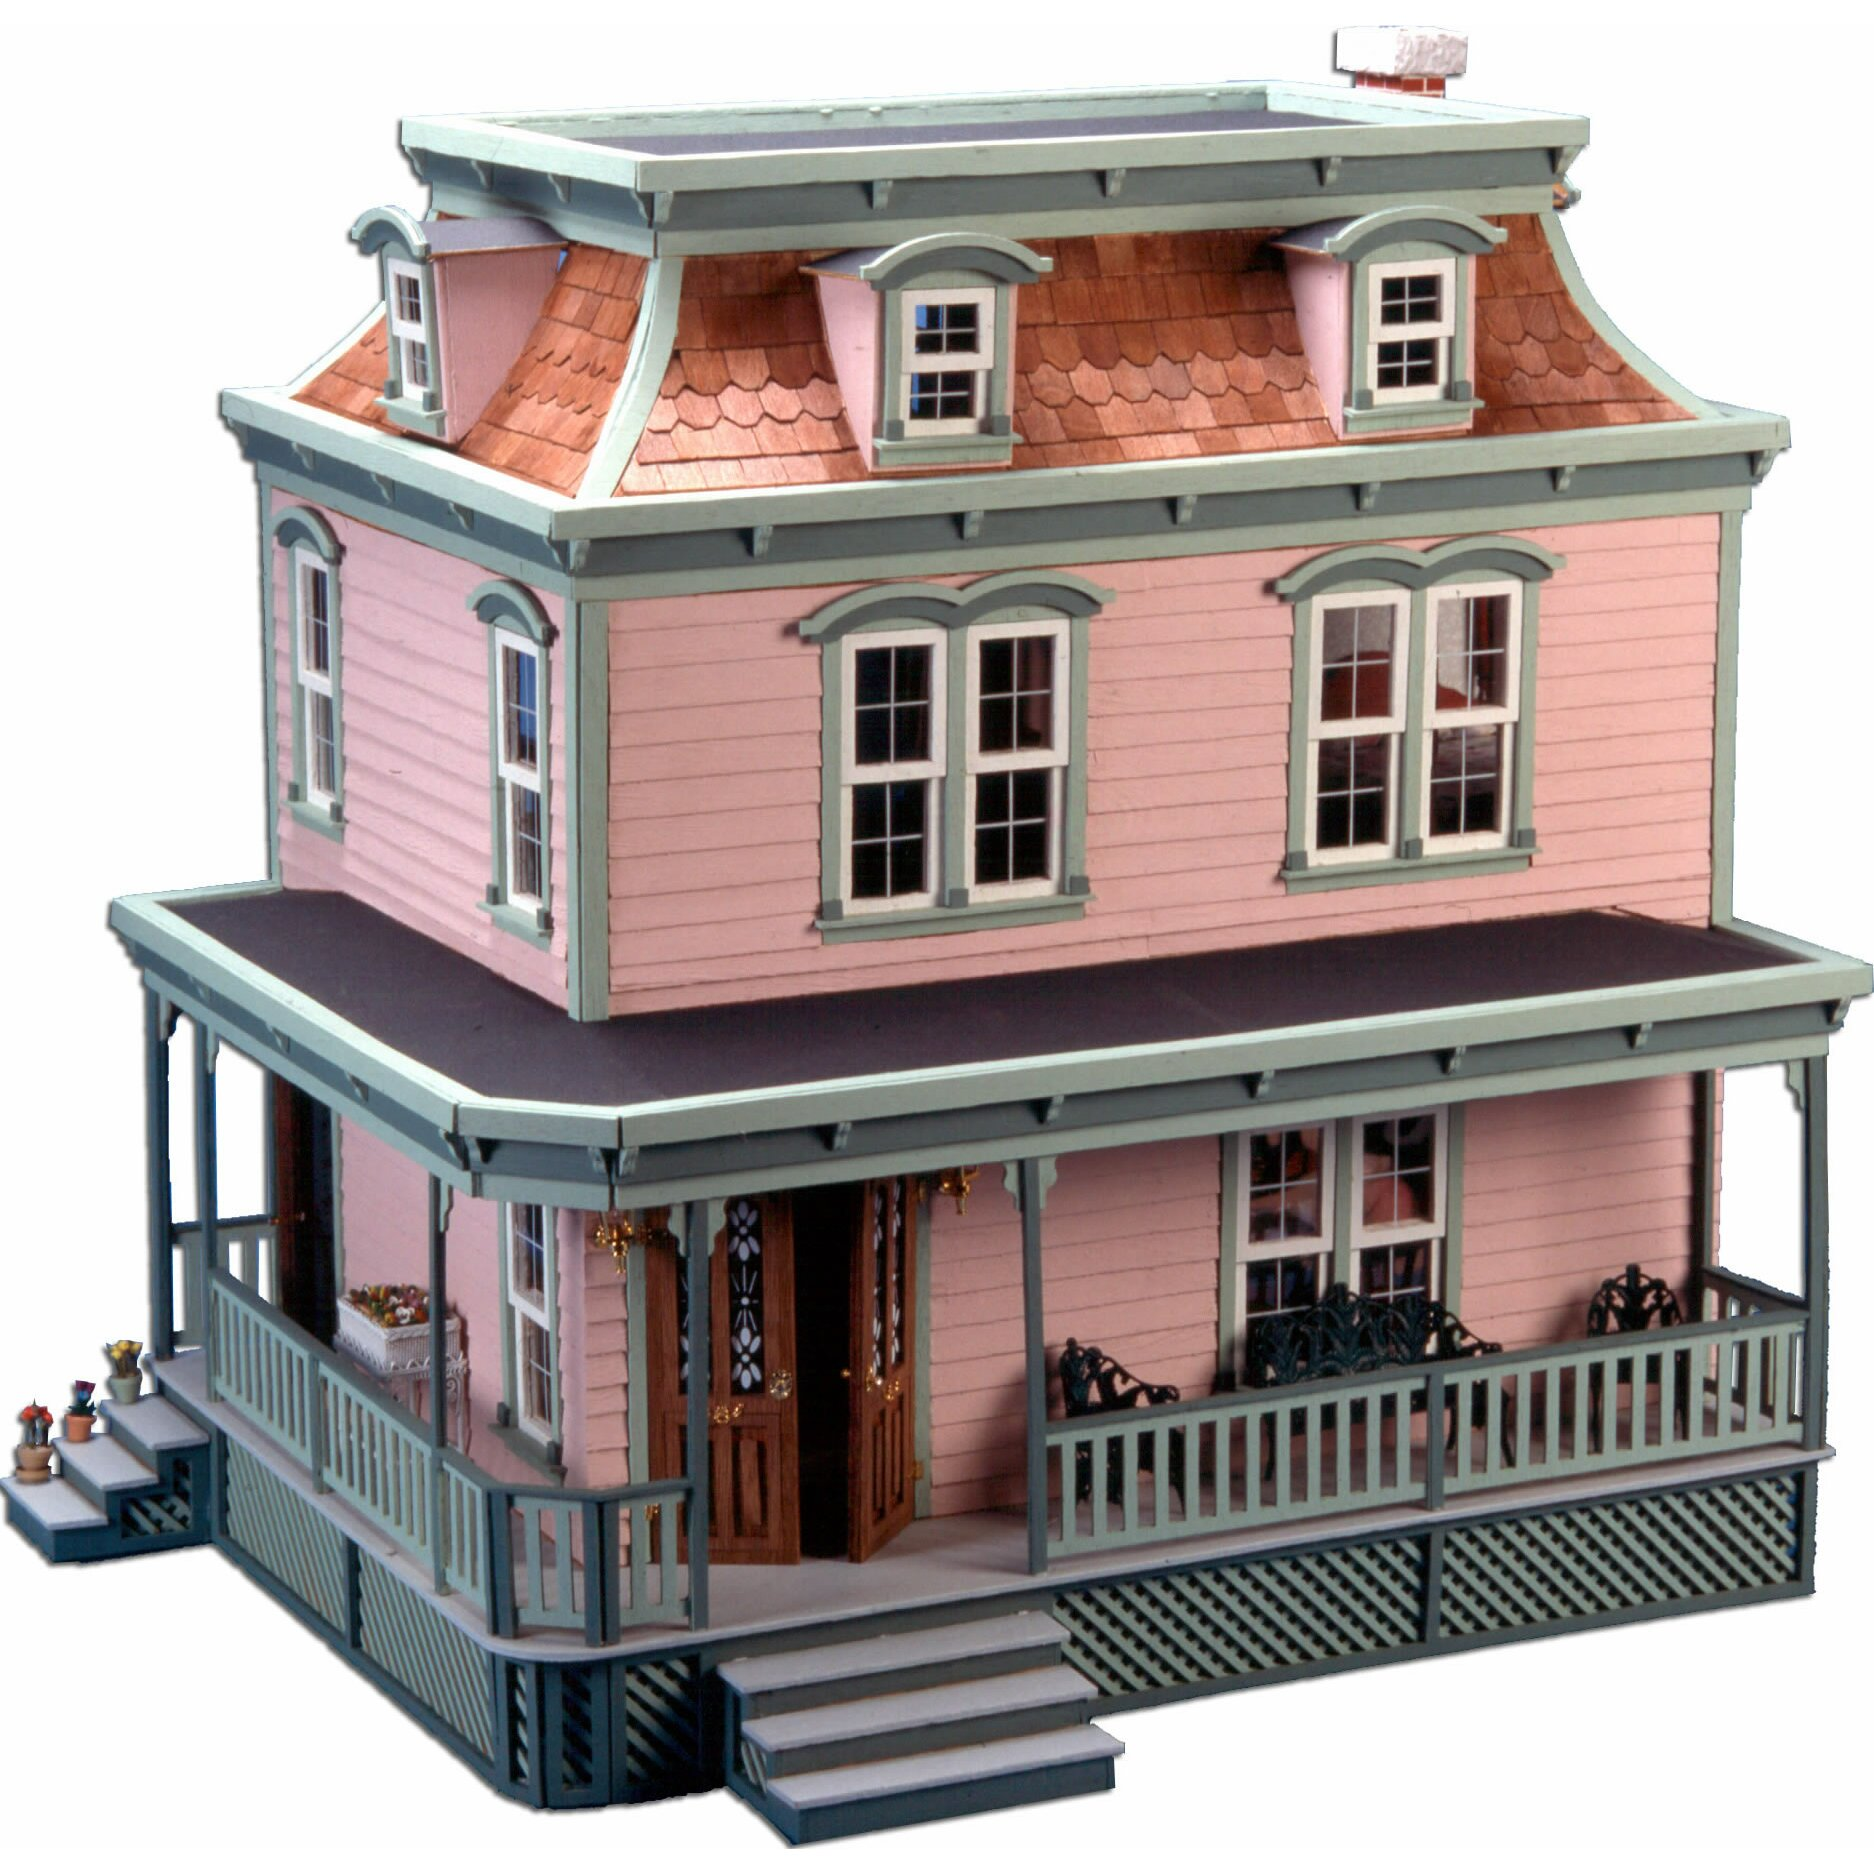 Greenleaf Dollhouses Lily Dollhouse & Reviews